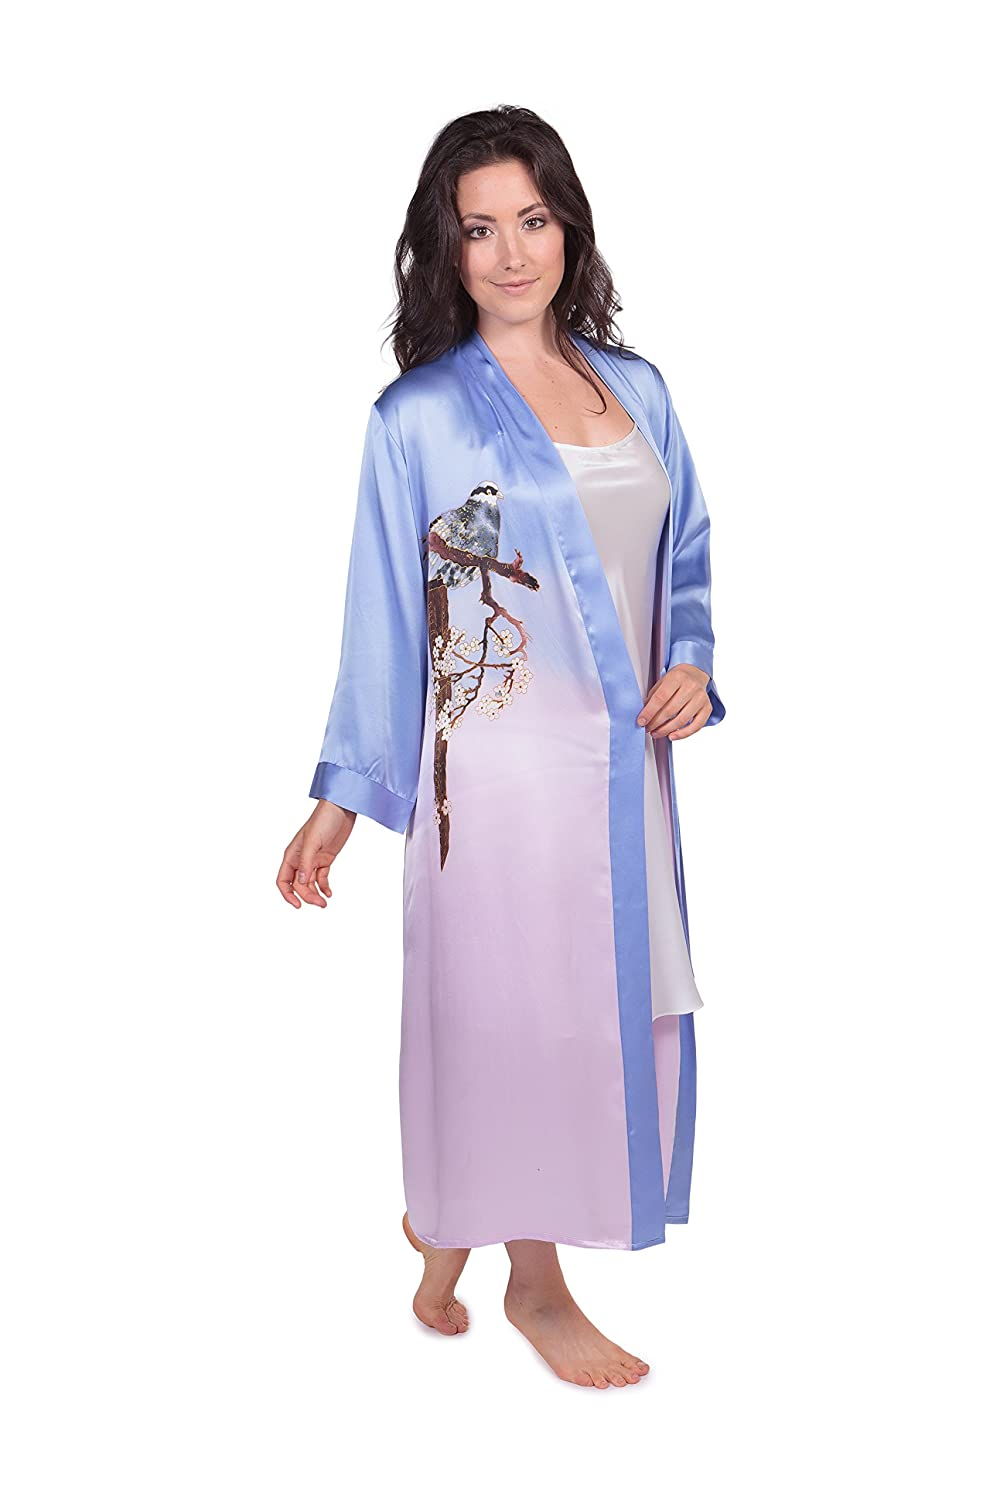 TexereSilk Women s Long Silk Ombre Robe - Luxury Beautiful Gifts for Her at  Amazon Women s Clothing store  337569bc0